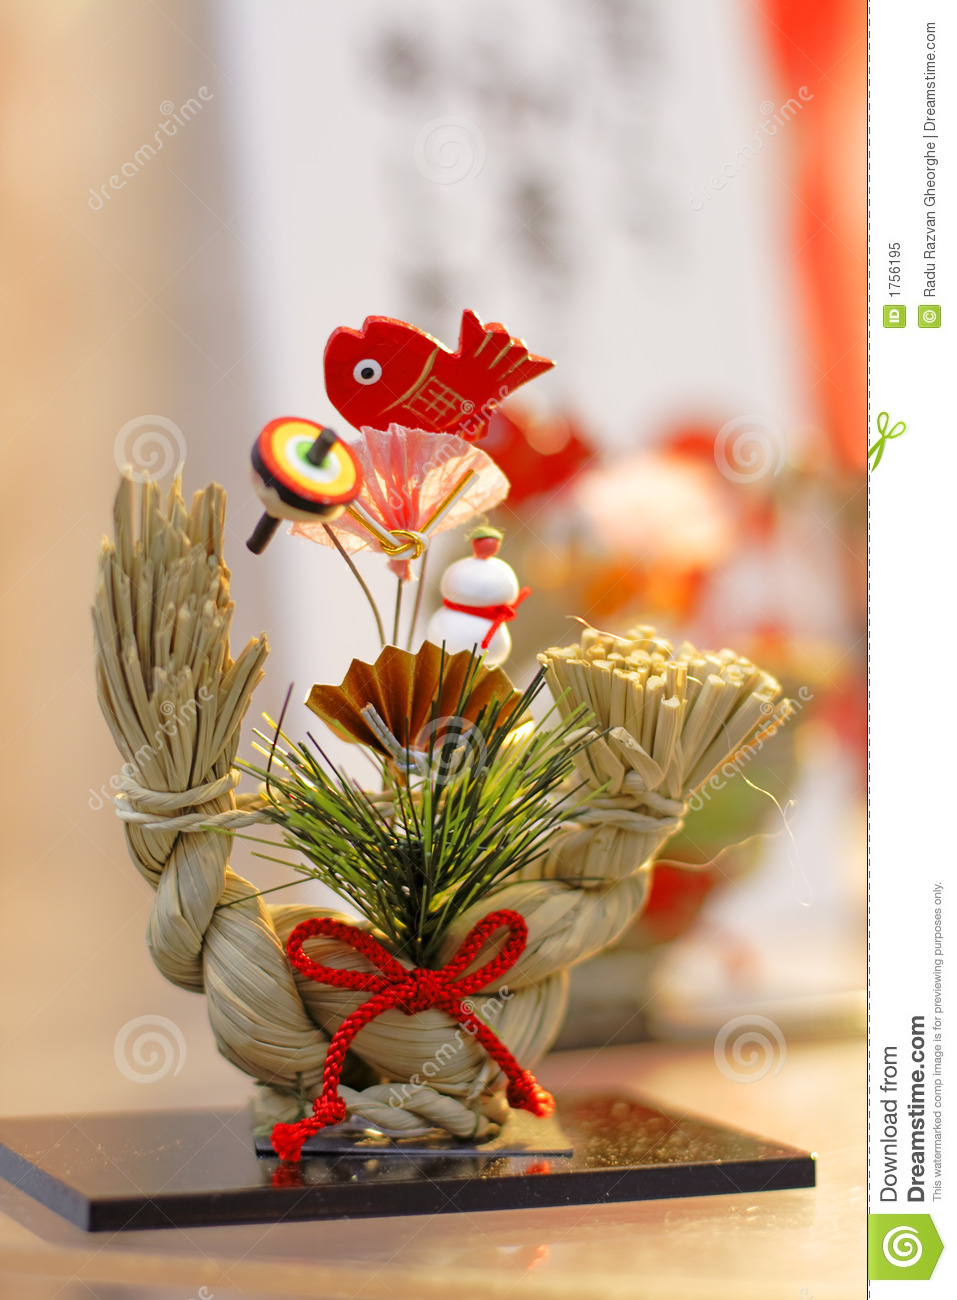 japanese new year decoration royalty free stock photo - image: 1756195